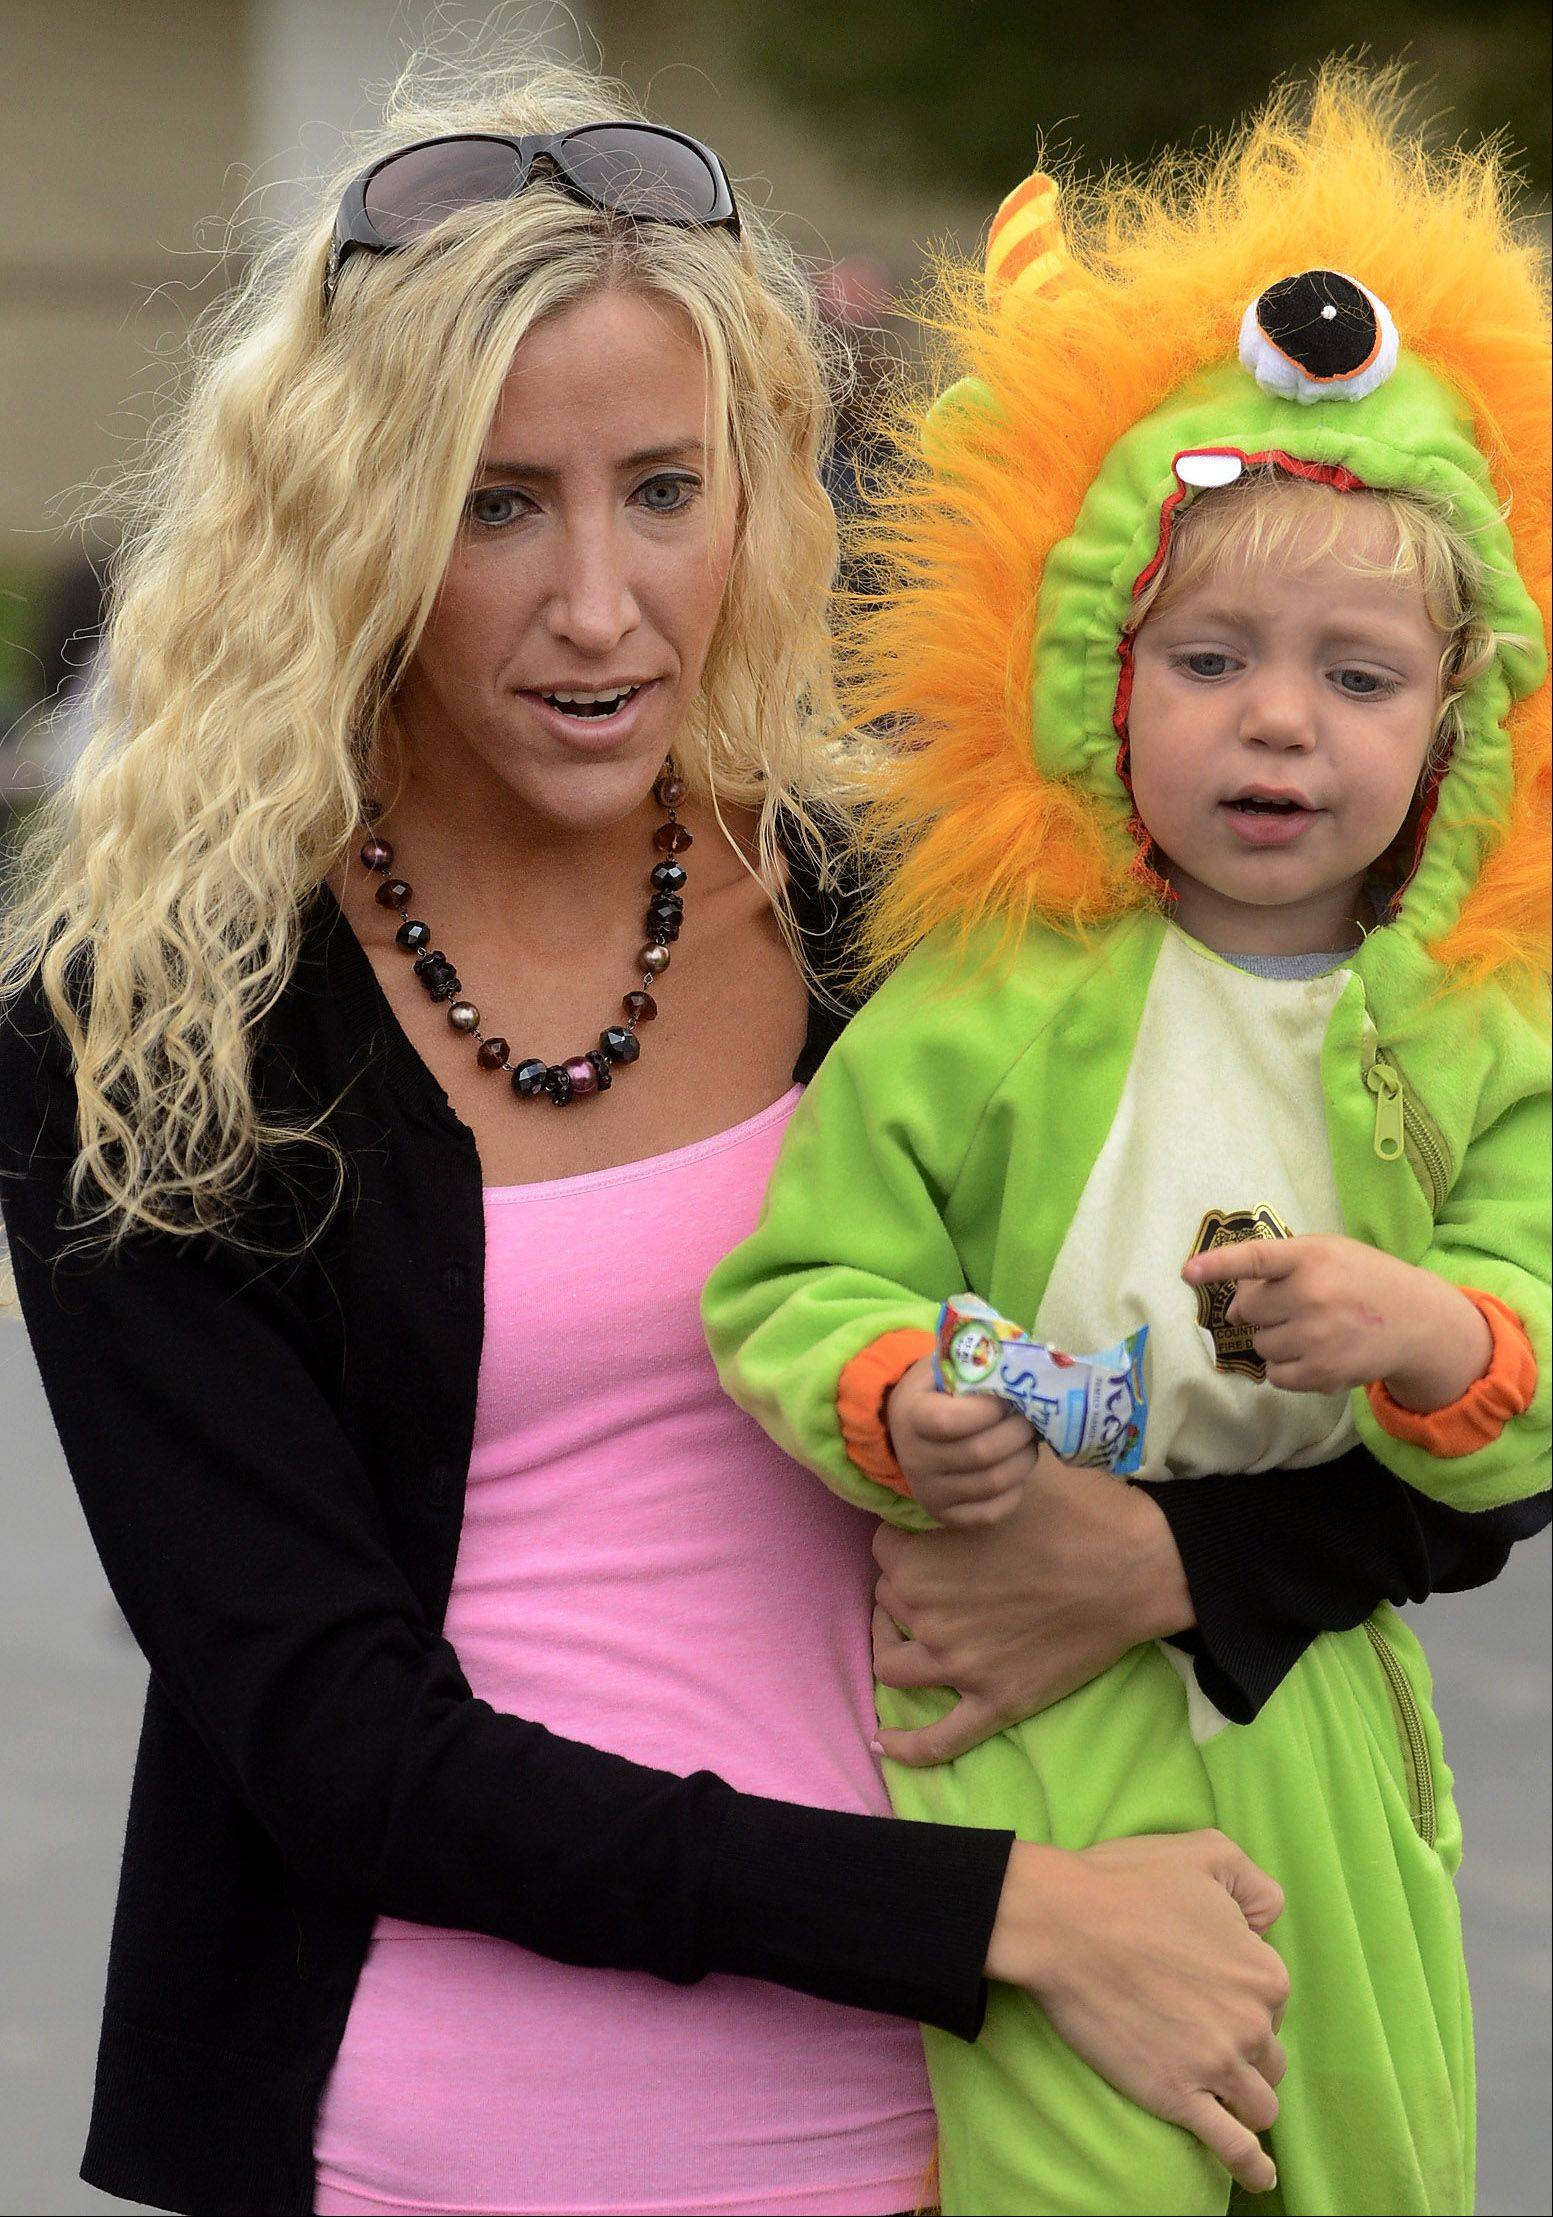 Dressed as a monster, Marley Fox is held by his mom Jordana Fox, while waiting to board a truck during Trucks, Trunks and Treats at the Vernon Hills Sullivan Community Center Saturday.